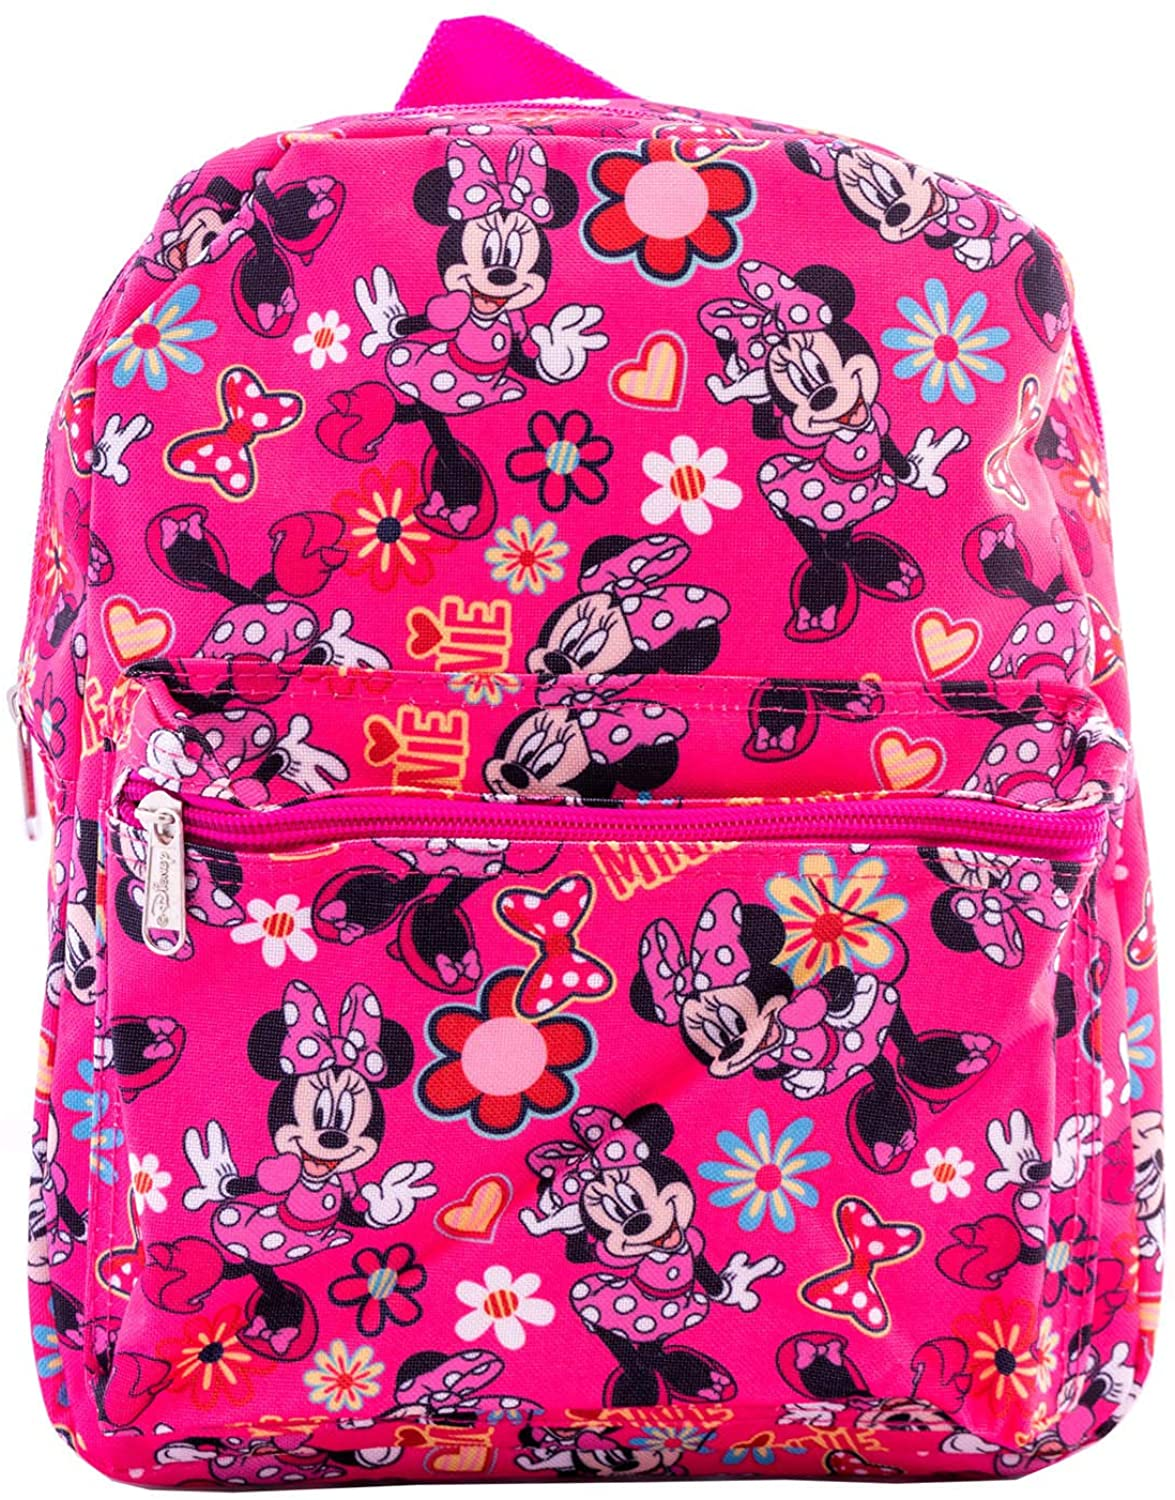 "Disney Minnie Mouse Kids 12"" Backpack w/ Little Minnie Pattern P"